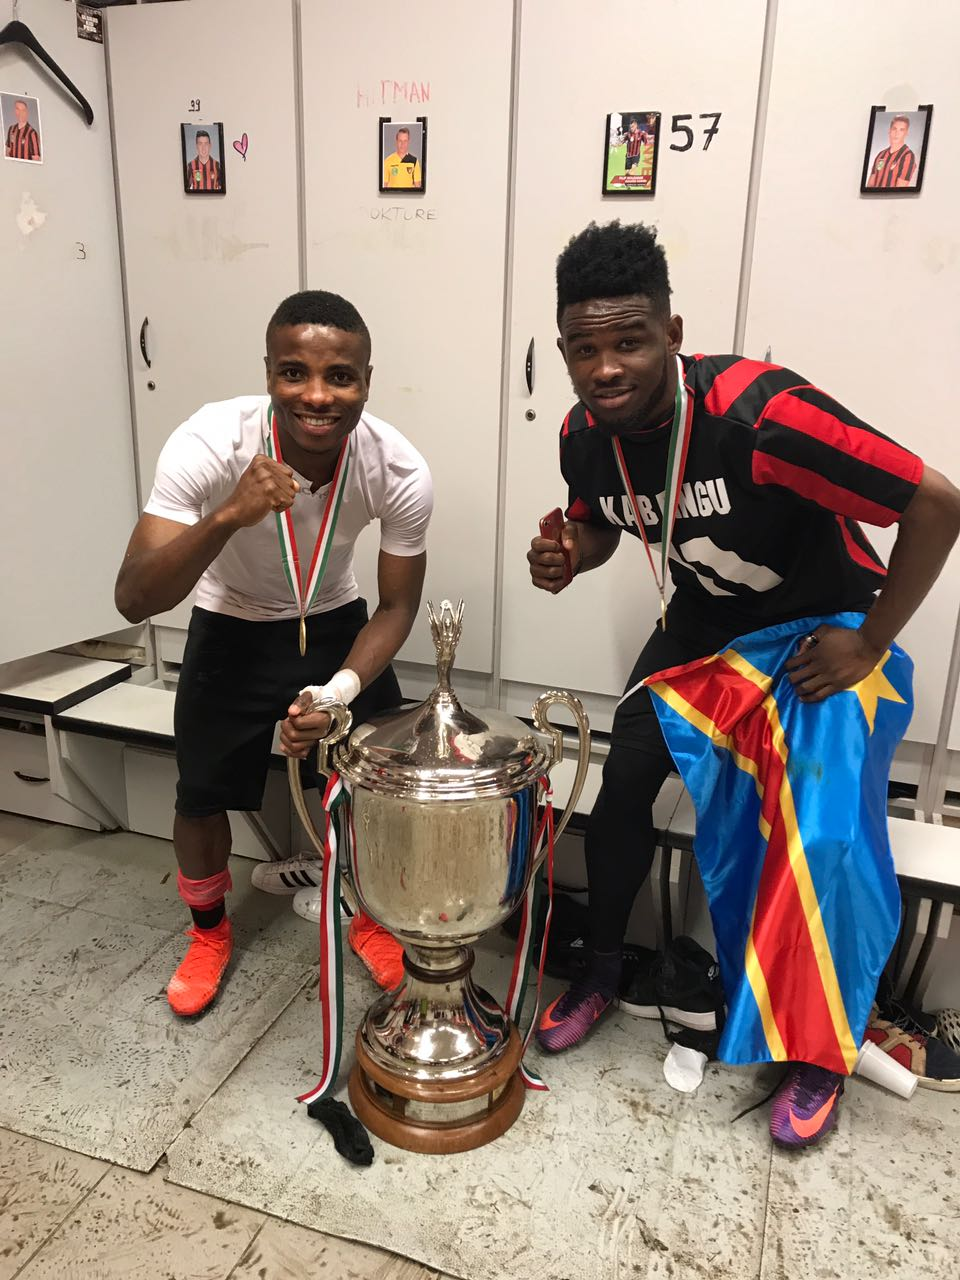 Nigerian King Wins Hungarian Title As Moses Makes Chelsea History